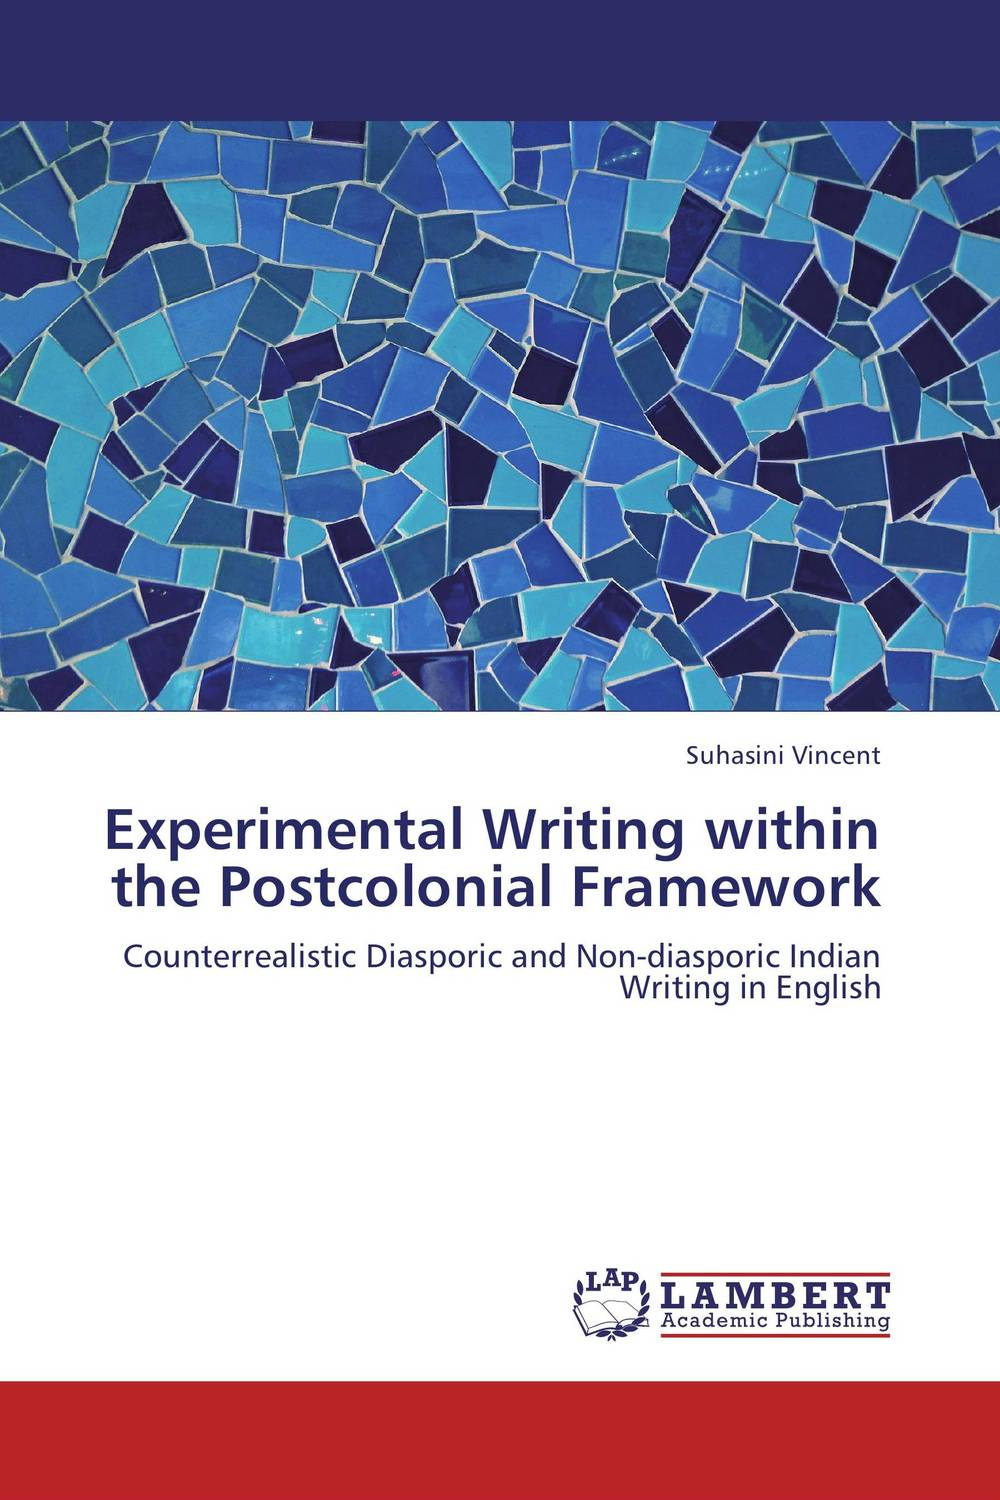 Experimental Writing within the Postcolonial Framework cultural and linguistic hybridity in postcolonial text